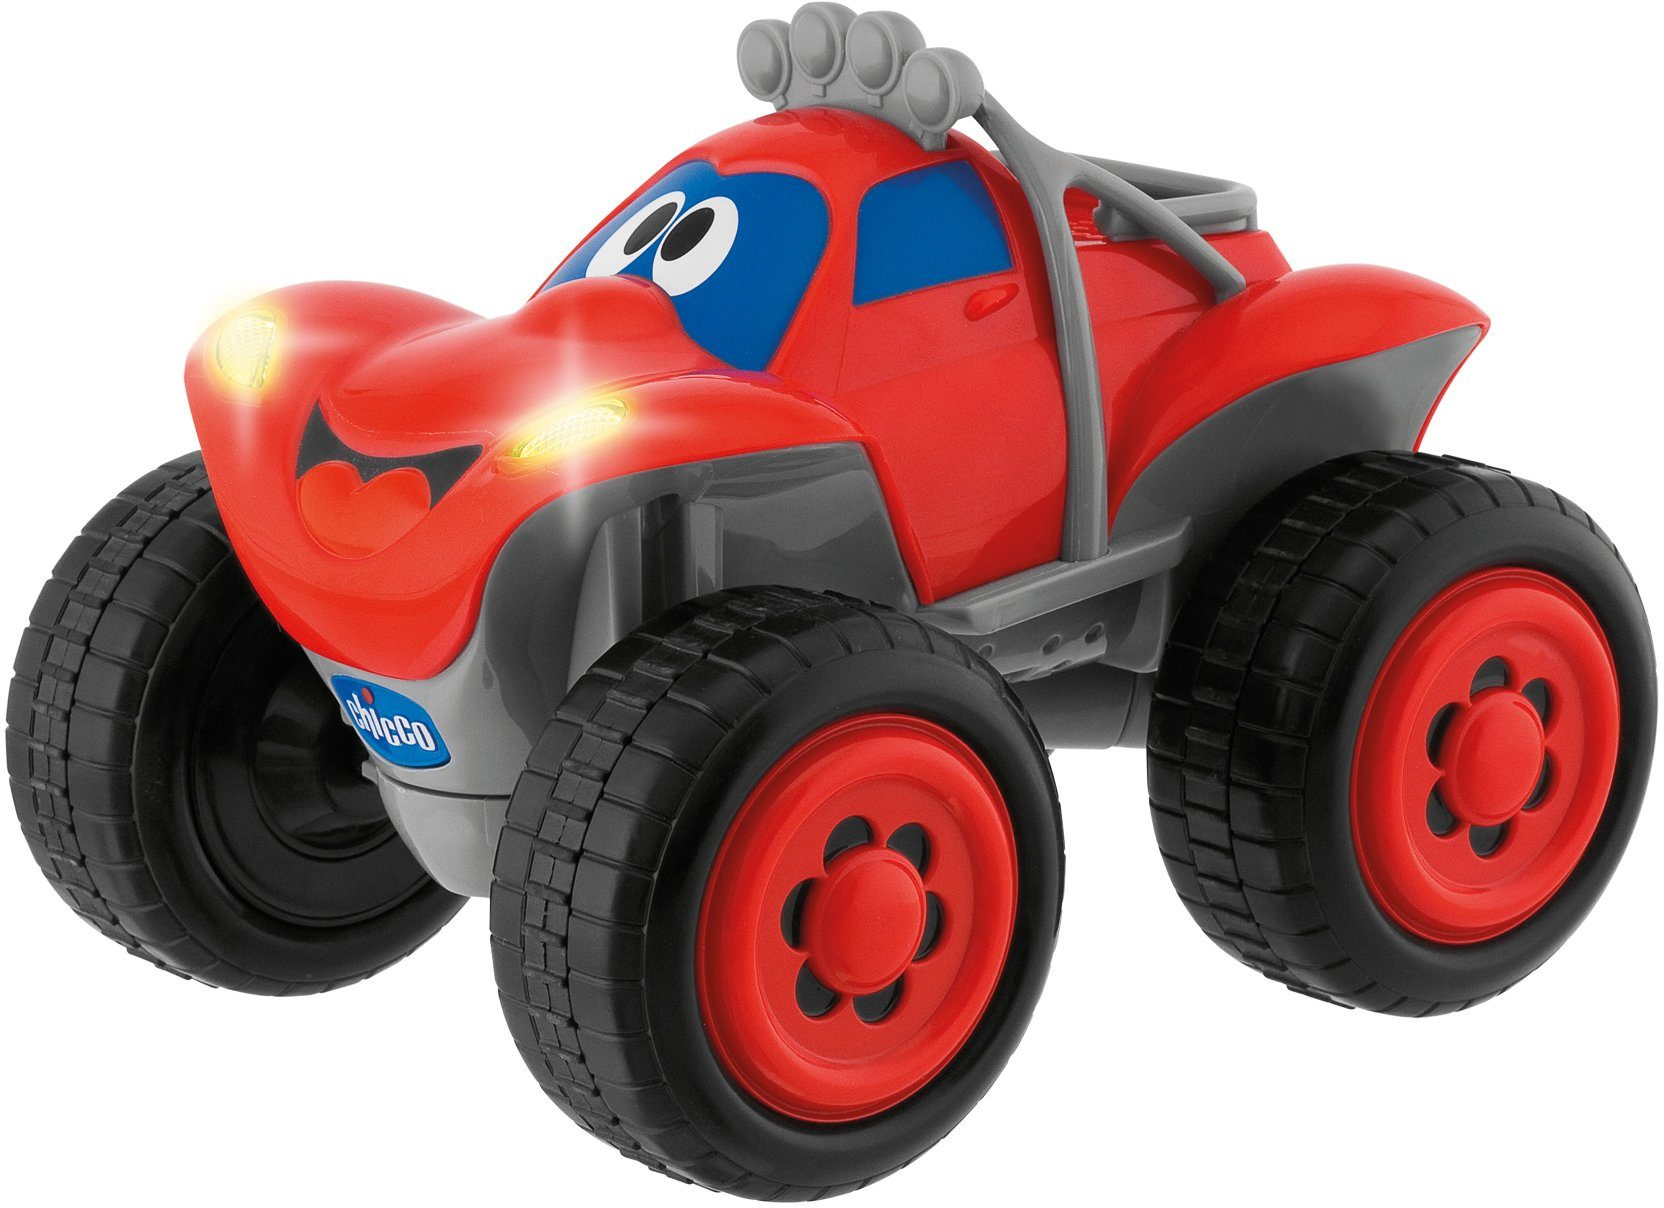 Chicco® RC Auto mit Licht und Soundfunktion, »Turbo Team Billy BigWheels, Rot«